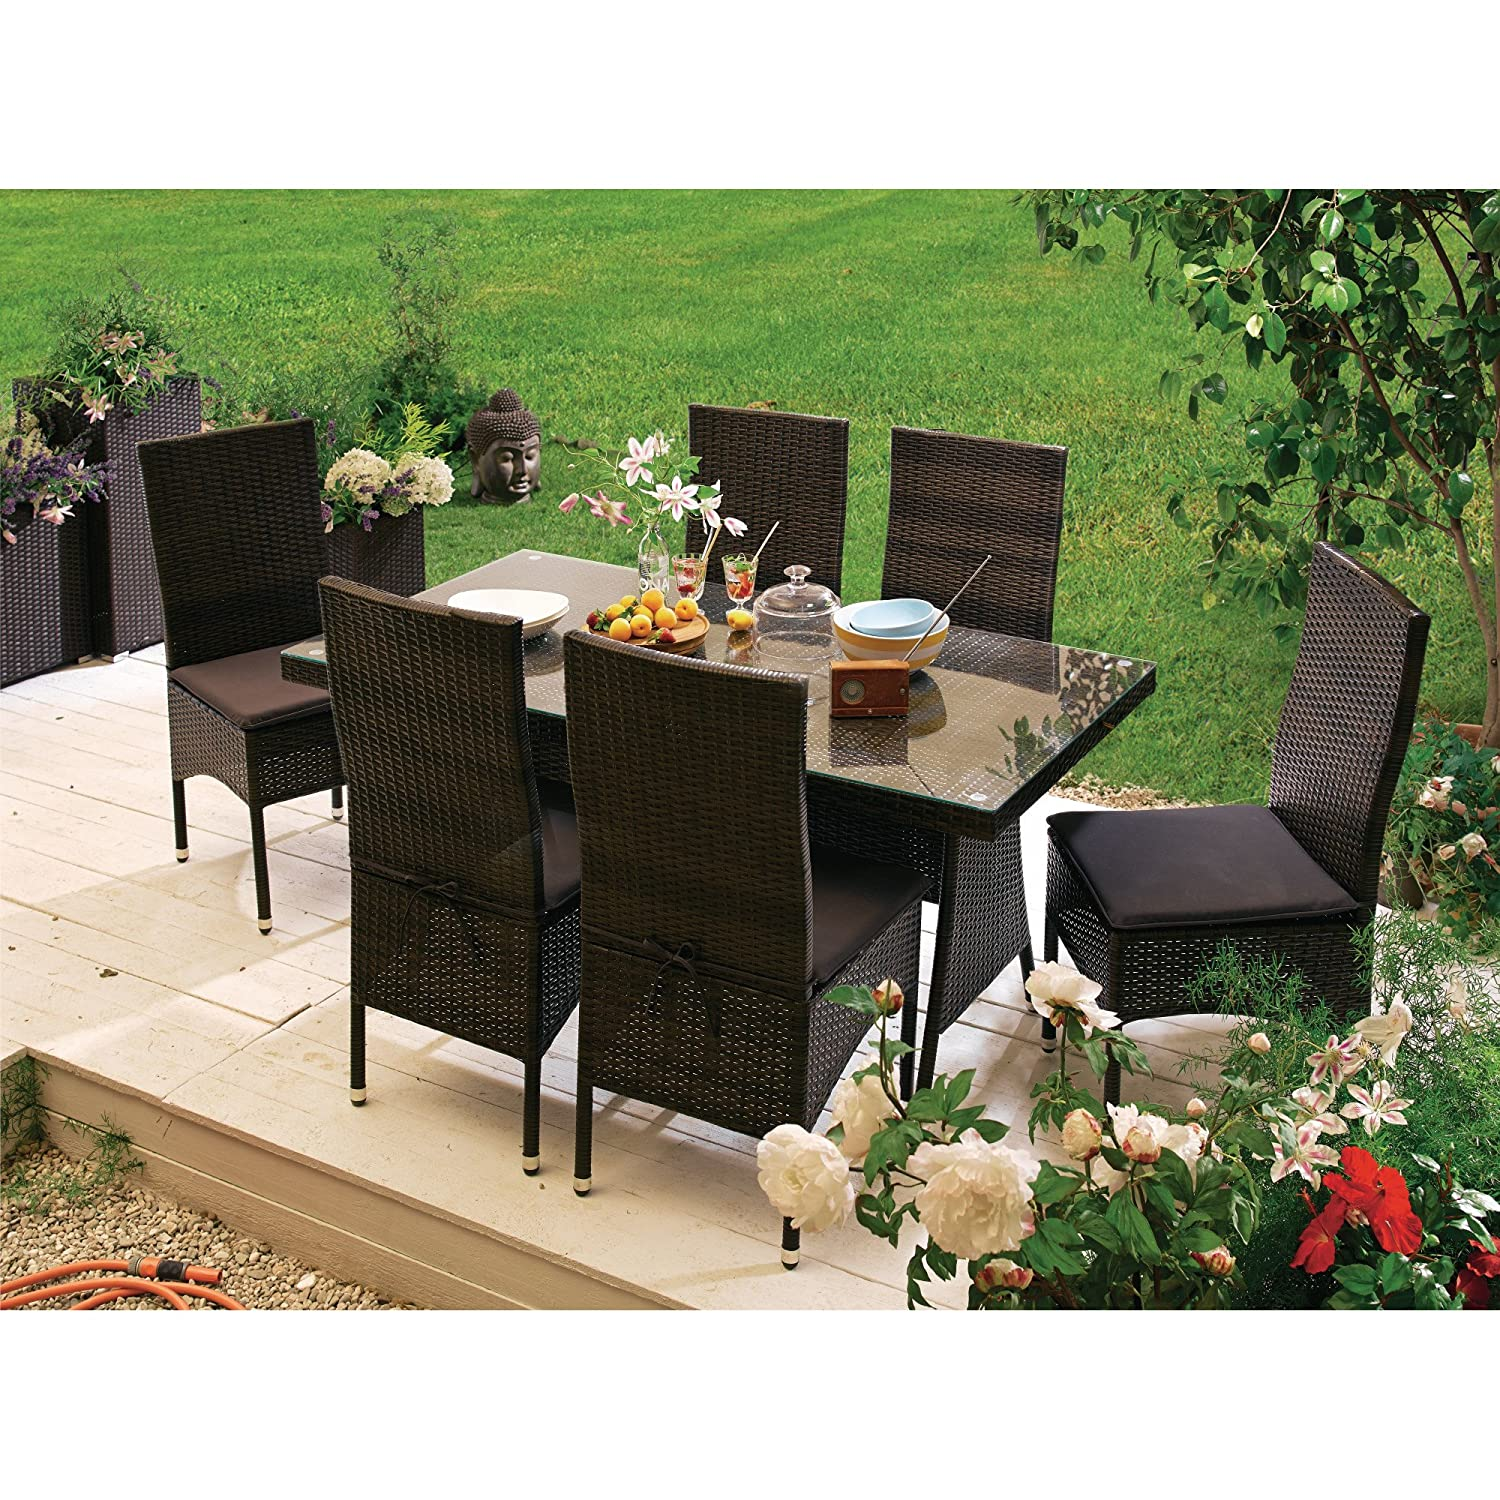 gartenm belset aus rattan mit auflagen 13 tlg tisch ca l150xb80xh74cm stuhl ca. Black Bedroom Furniture Sets. Home Design Ideas